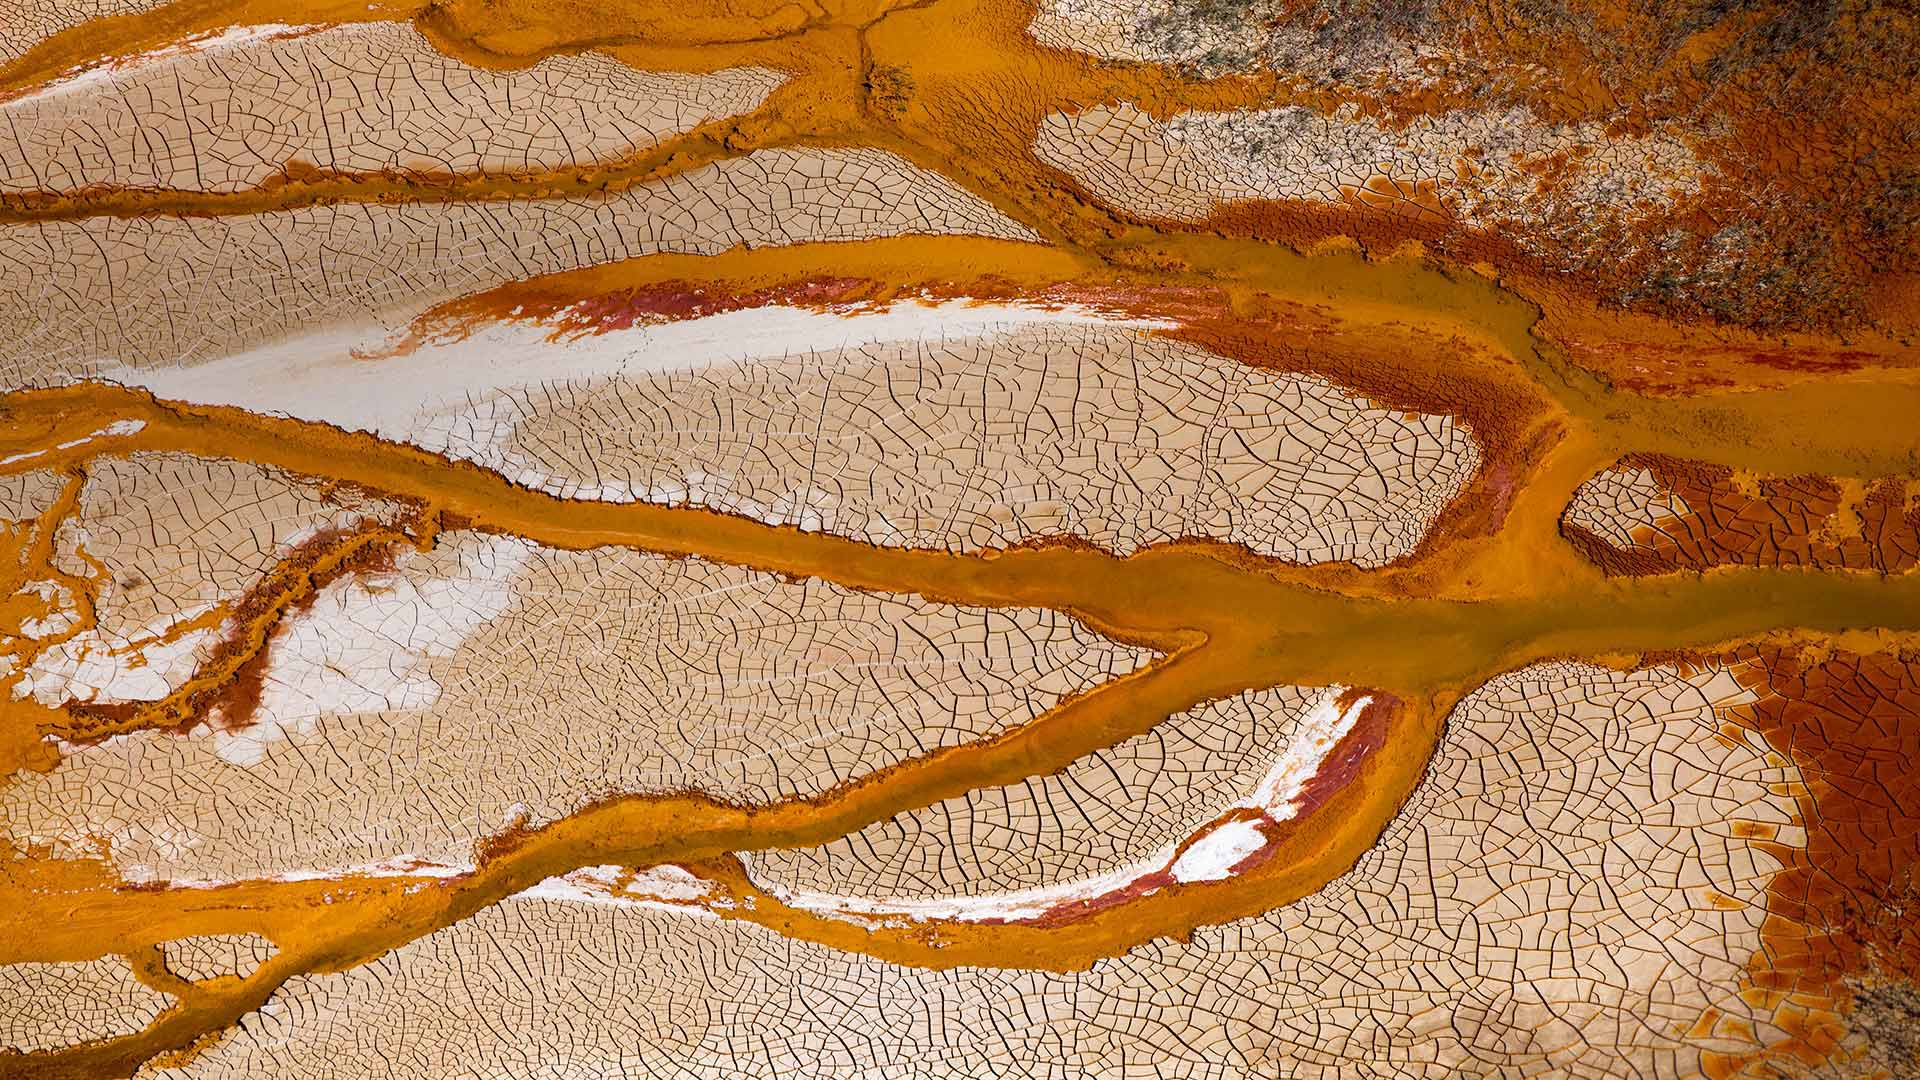 Channels of the Rio Tinto in Spain (© Oscar Diez Martinez/Minden Pictures)(Bing United States)